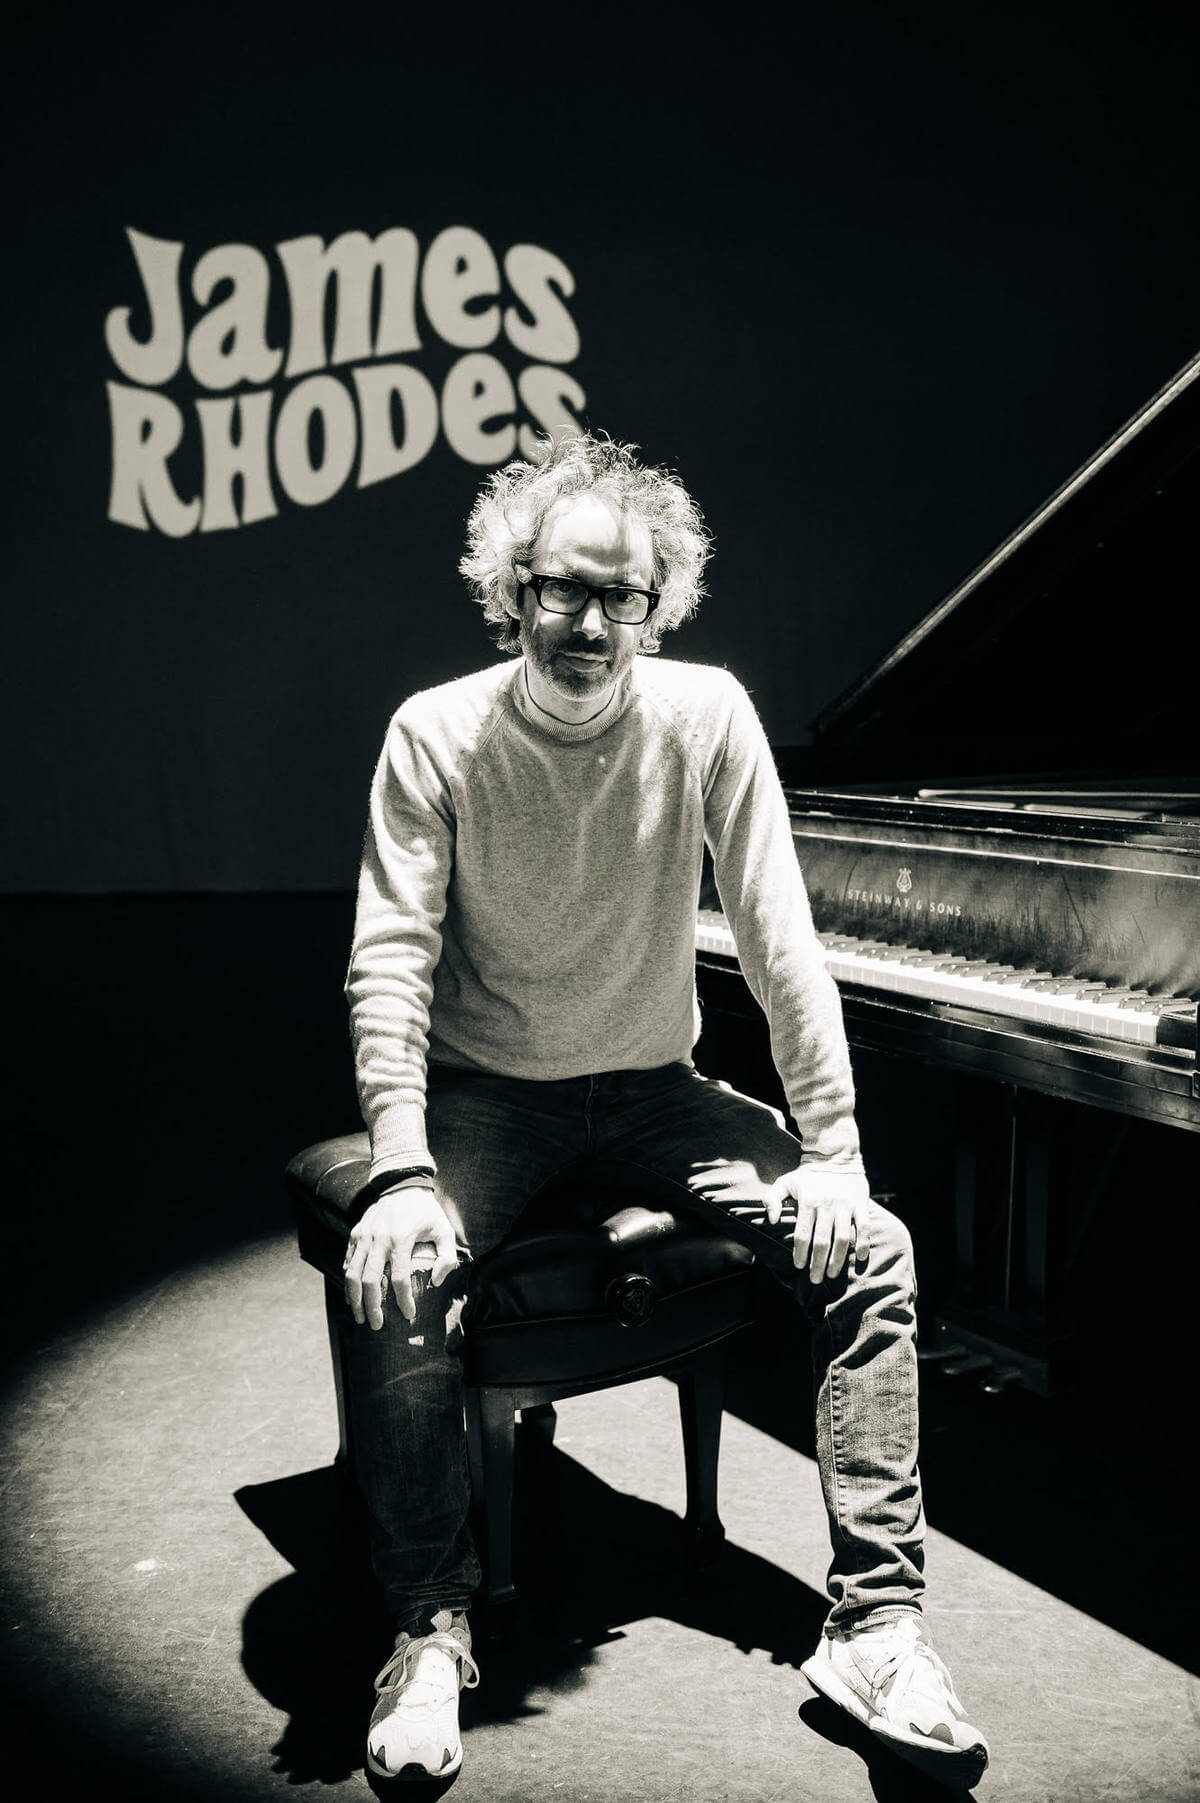 James Rhodes (Photo: Kenneth Chou Photography)